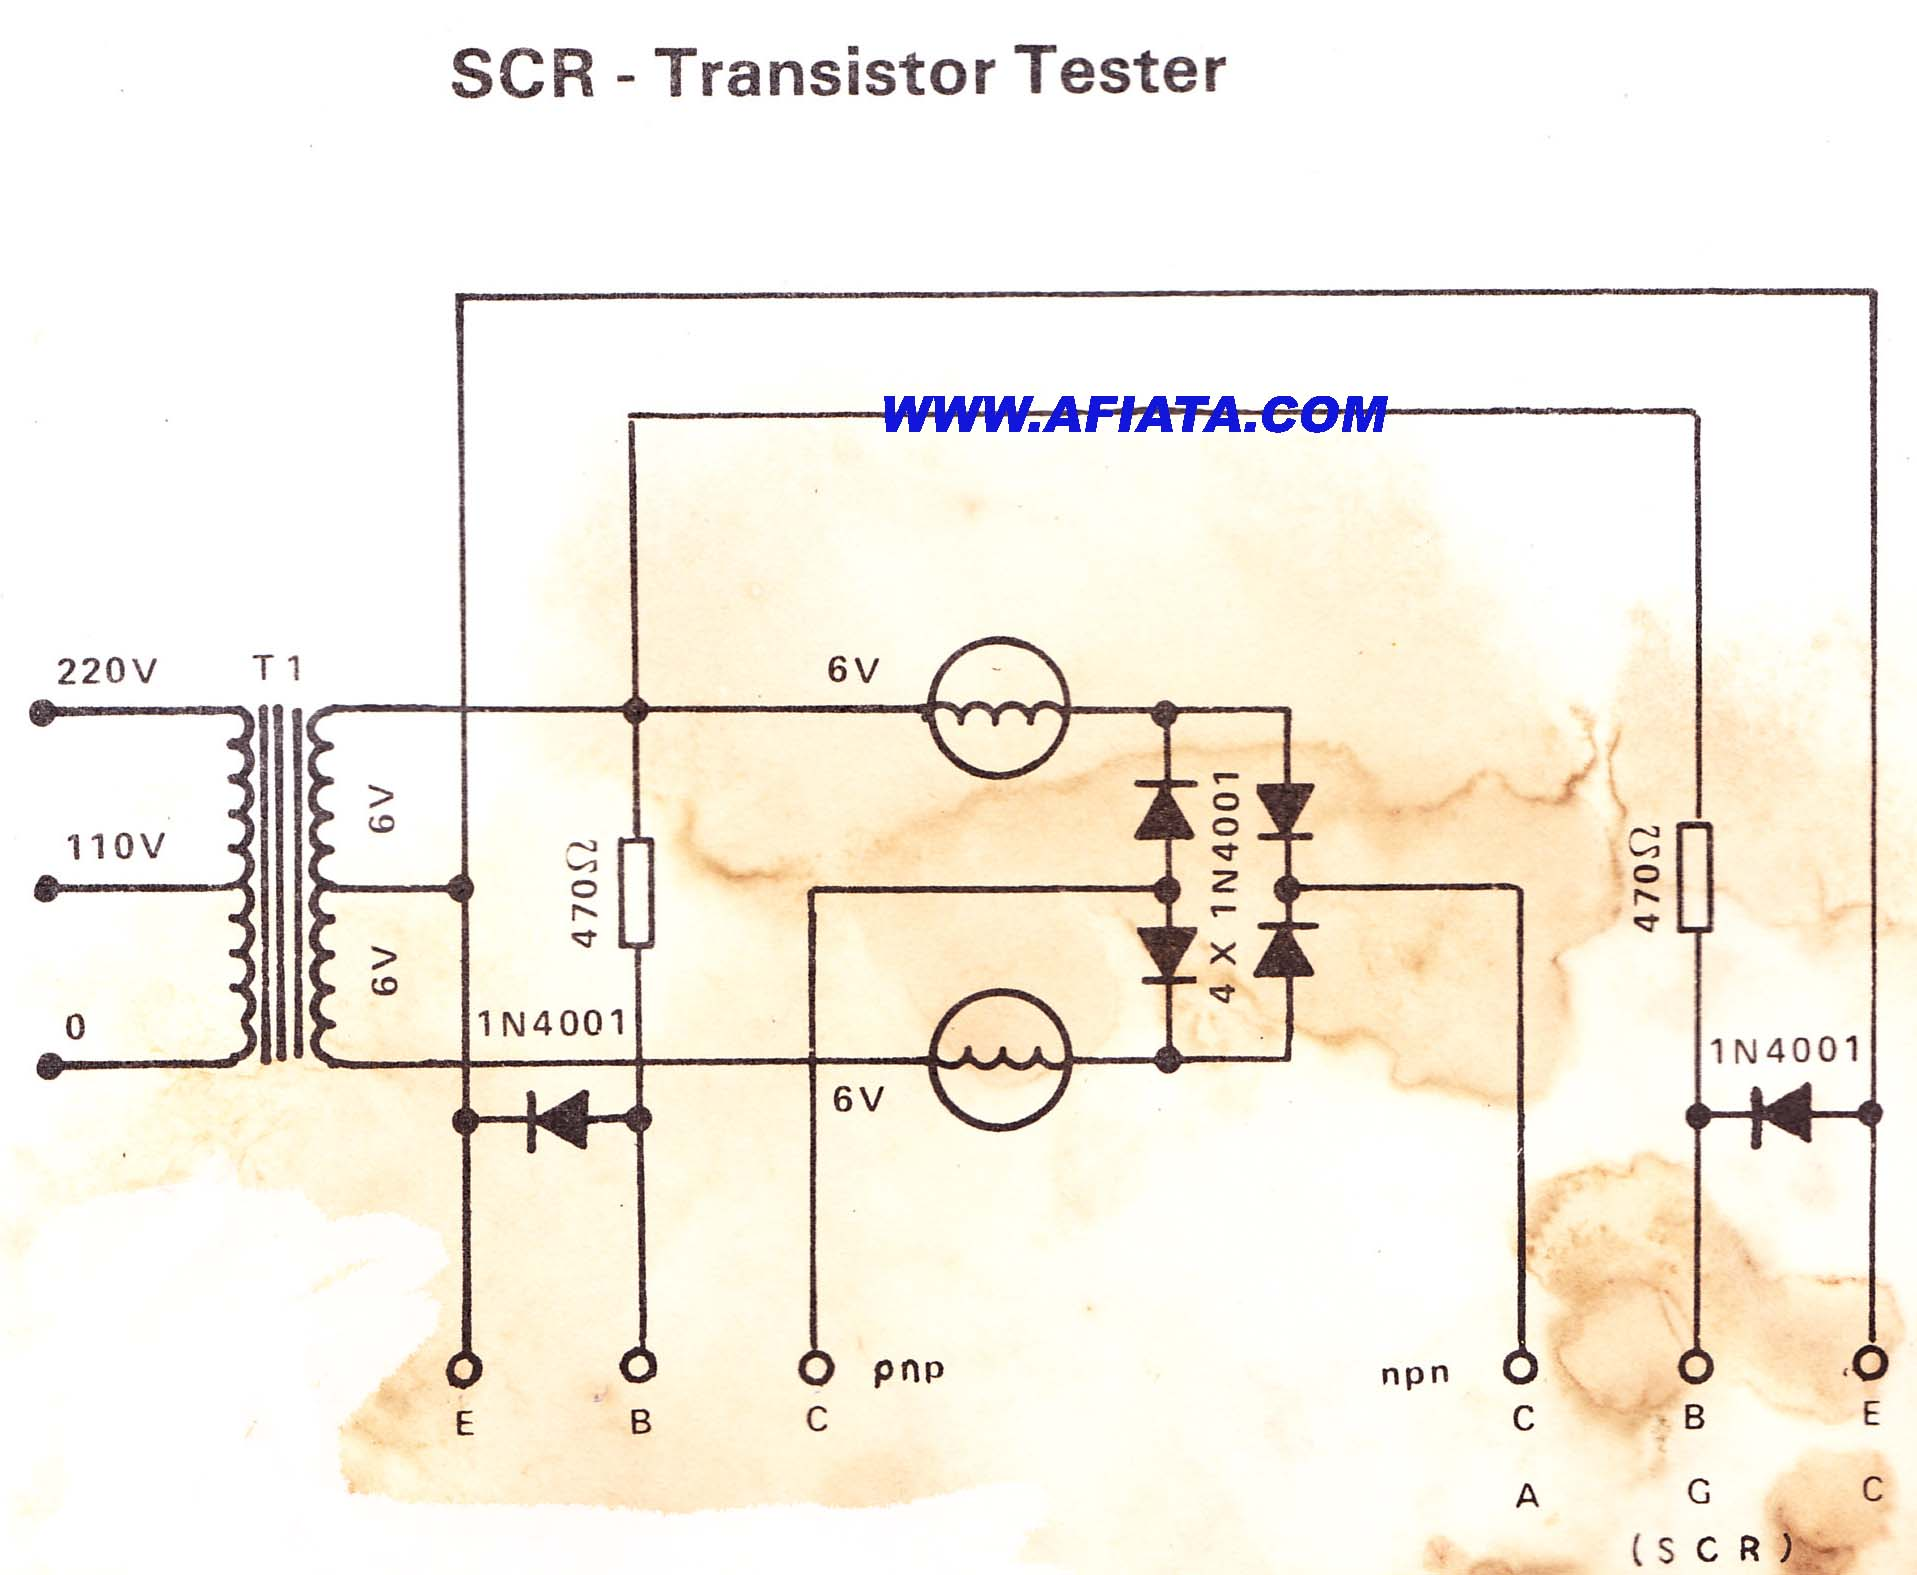 Scr Transistor Tester Circuit Electronic Diagram And Layout